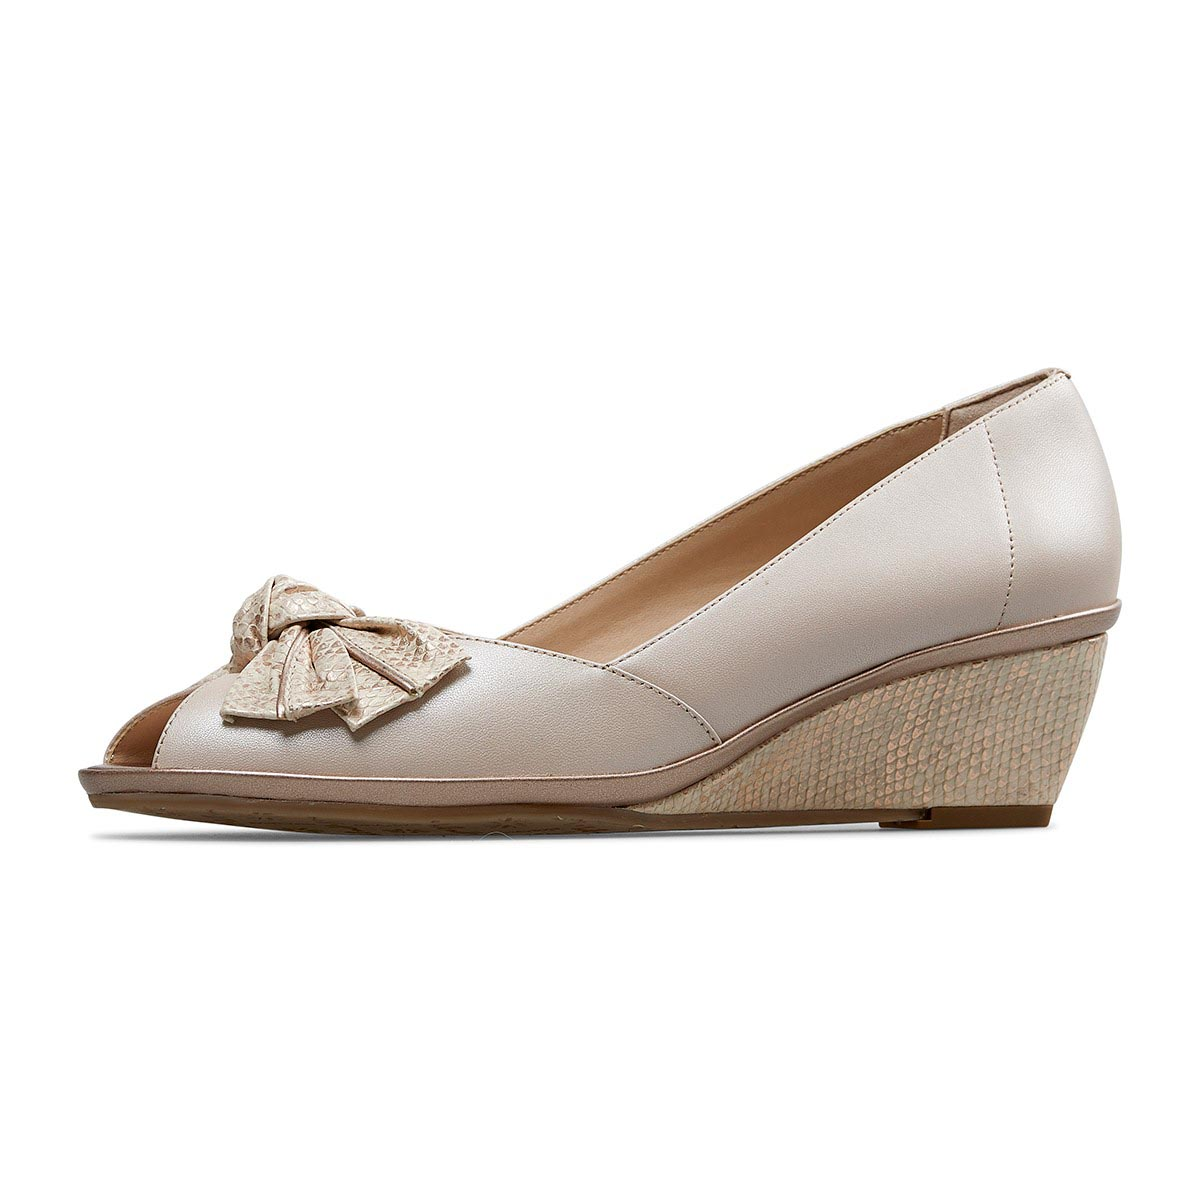 Van Dal - Florida Sesame Wedge Peep Toe